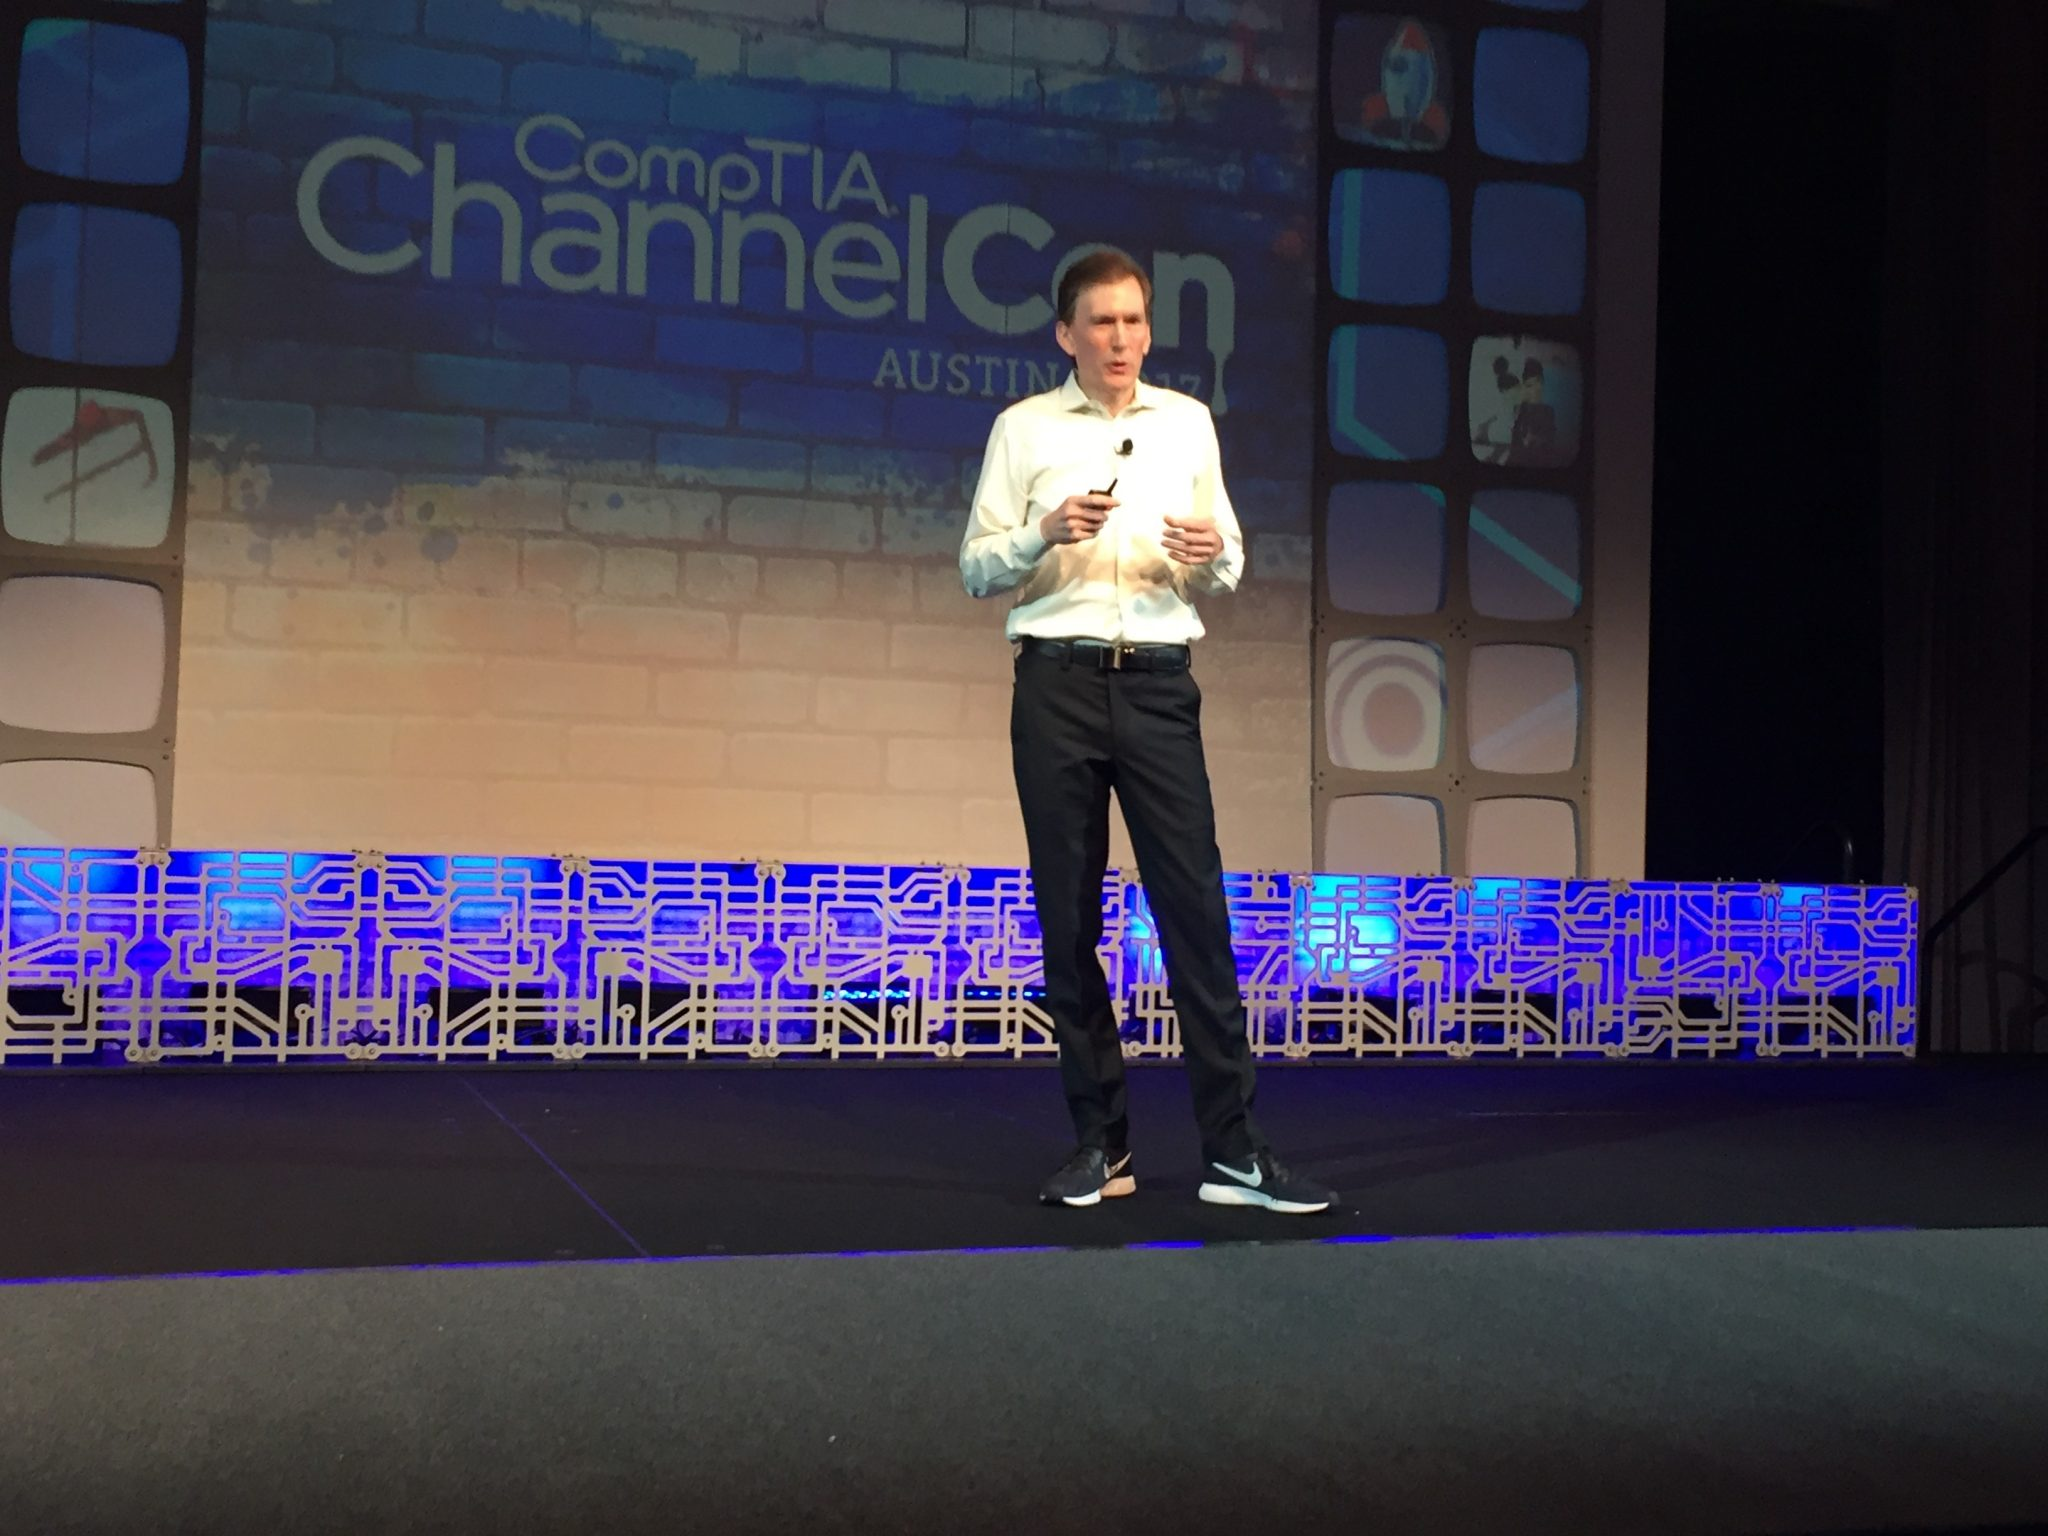 Todd Thibodeaux at CompTIA ChannelCon 2017